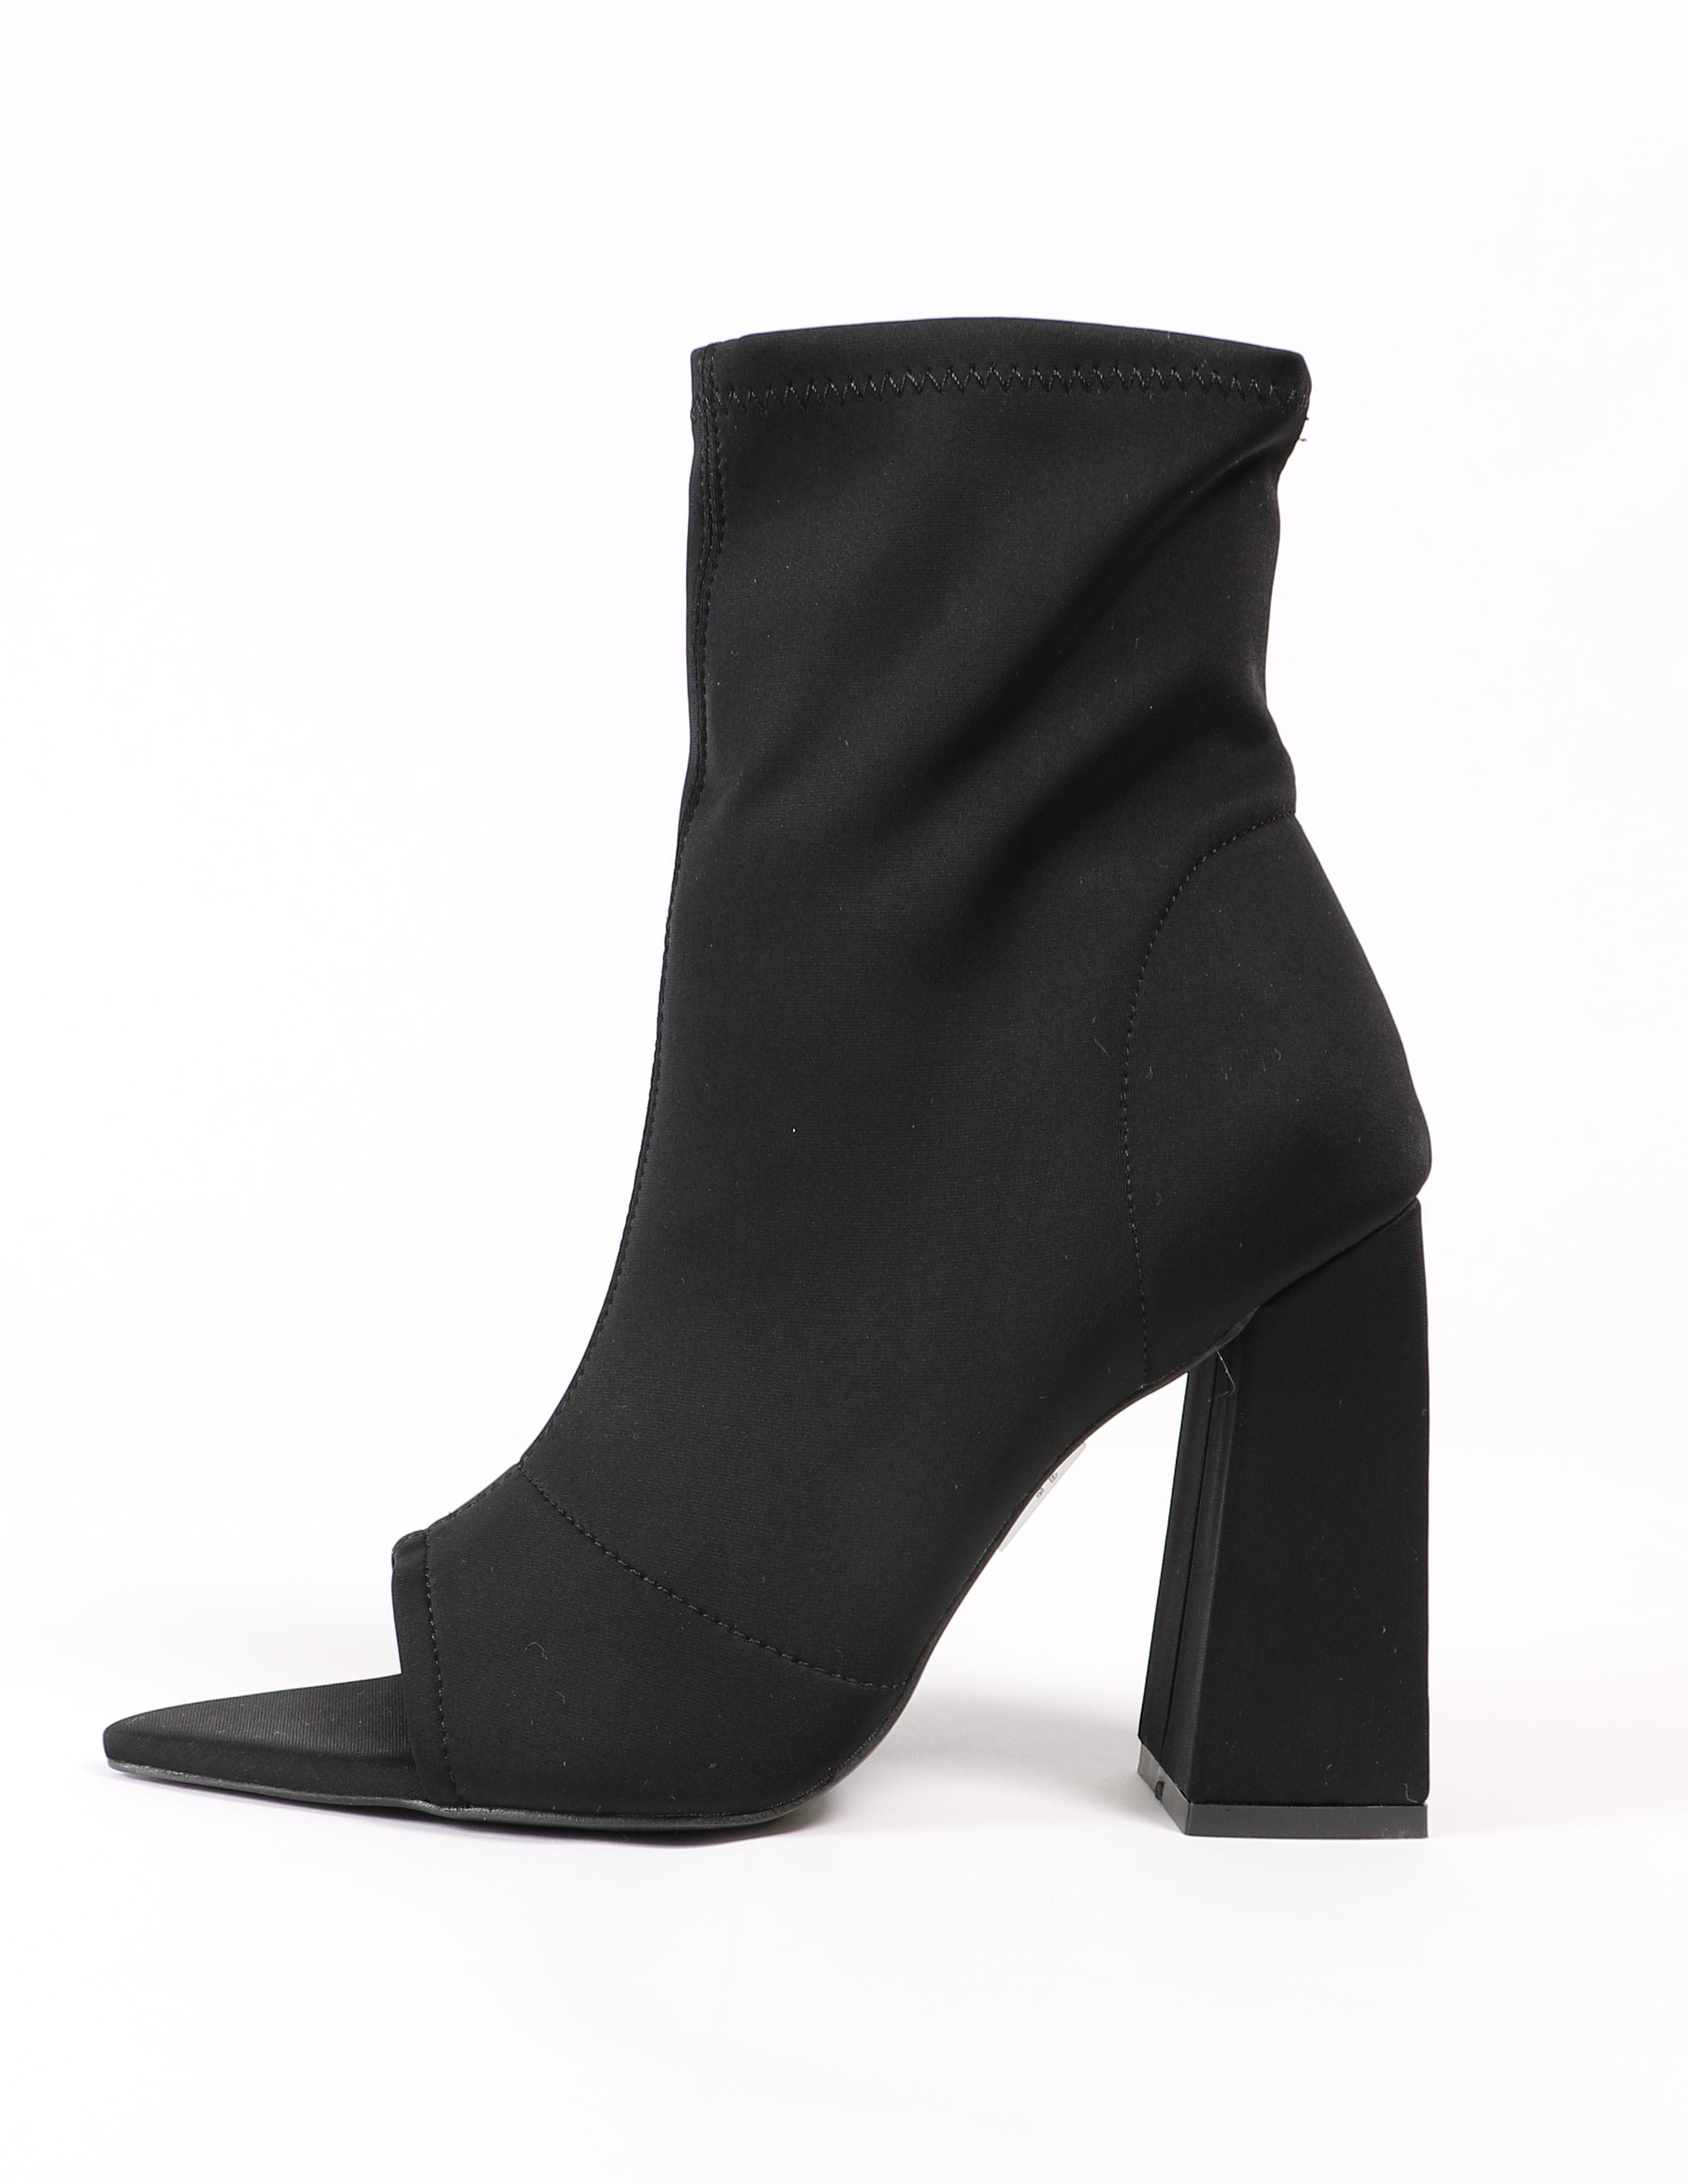 Side of the black sit tight bootie heel - elle bleu shoes